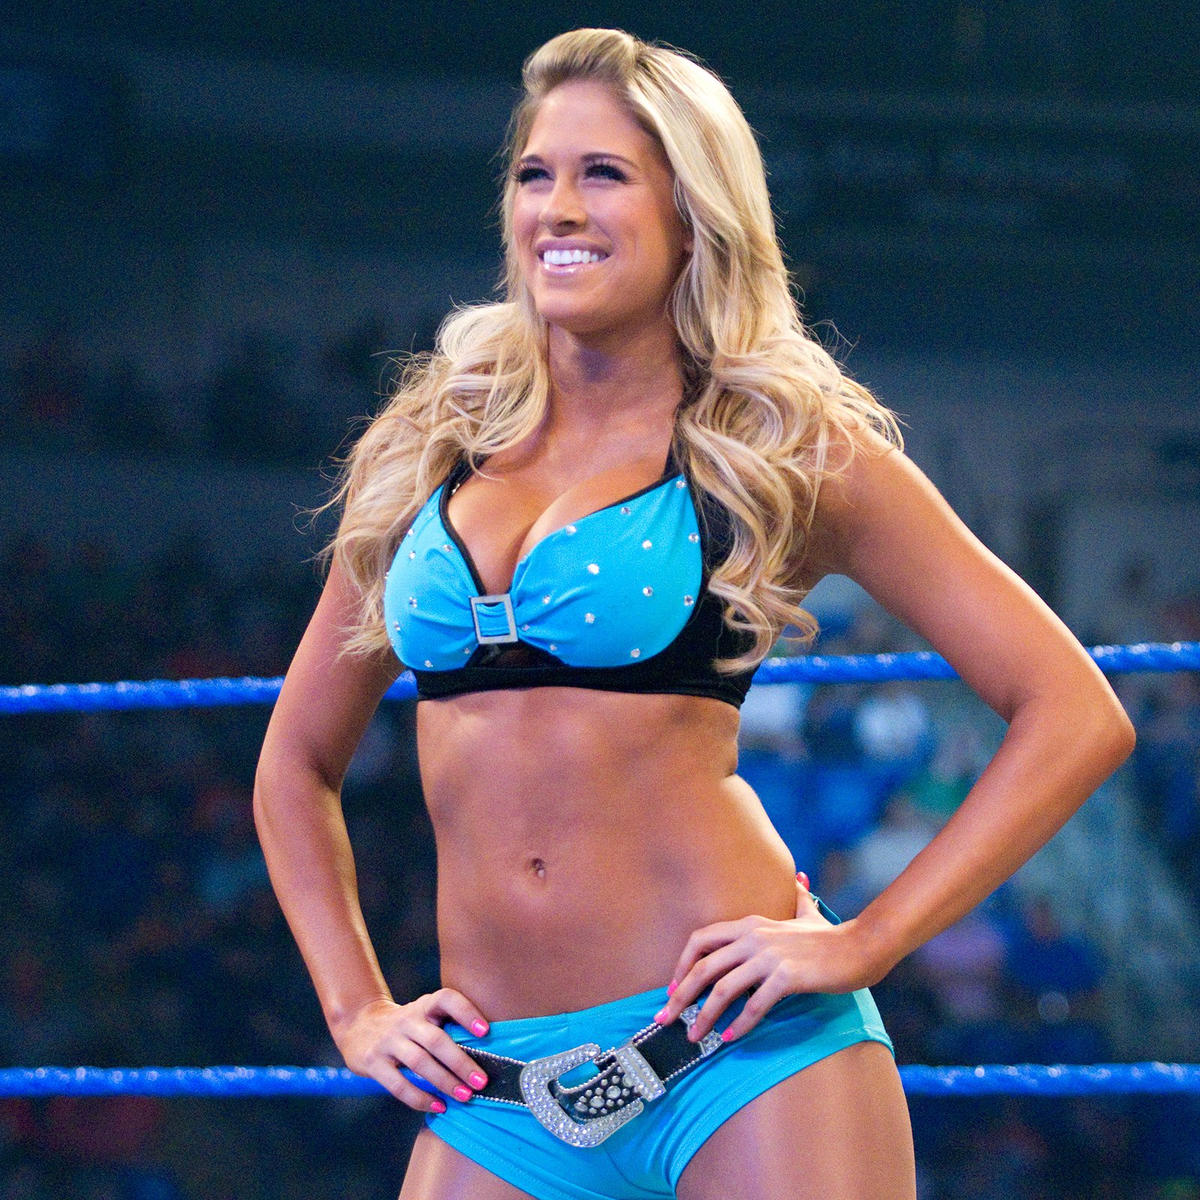 Photos Kelly Kelly (WWE) nude (54 photos), Sexy, Sideboobs, Feet, legs 2015